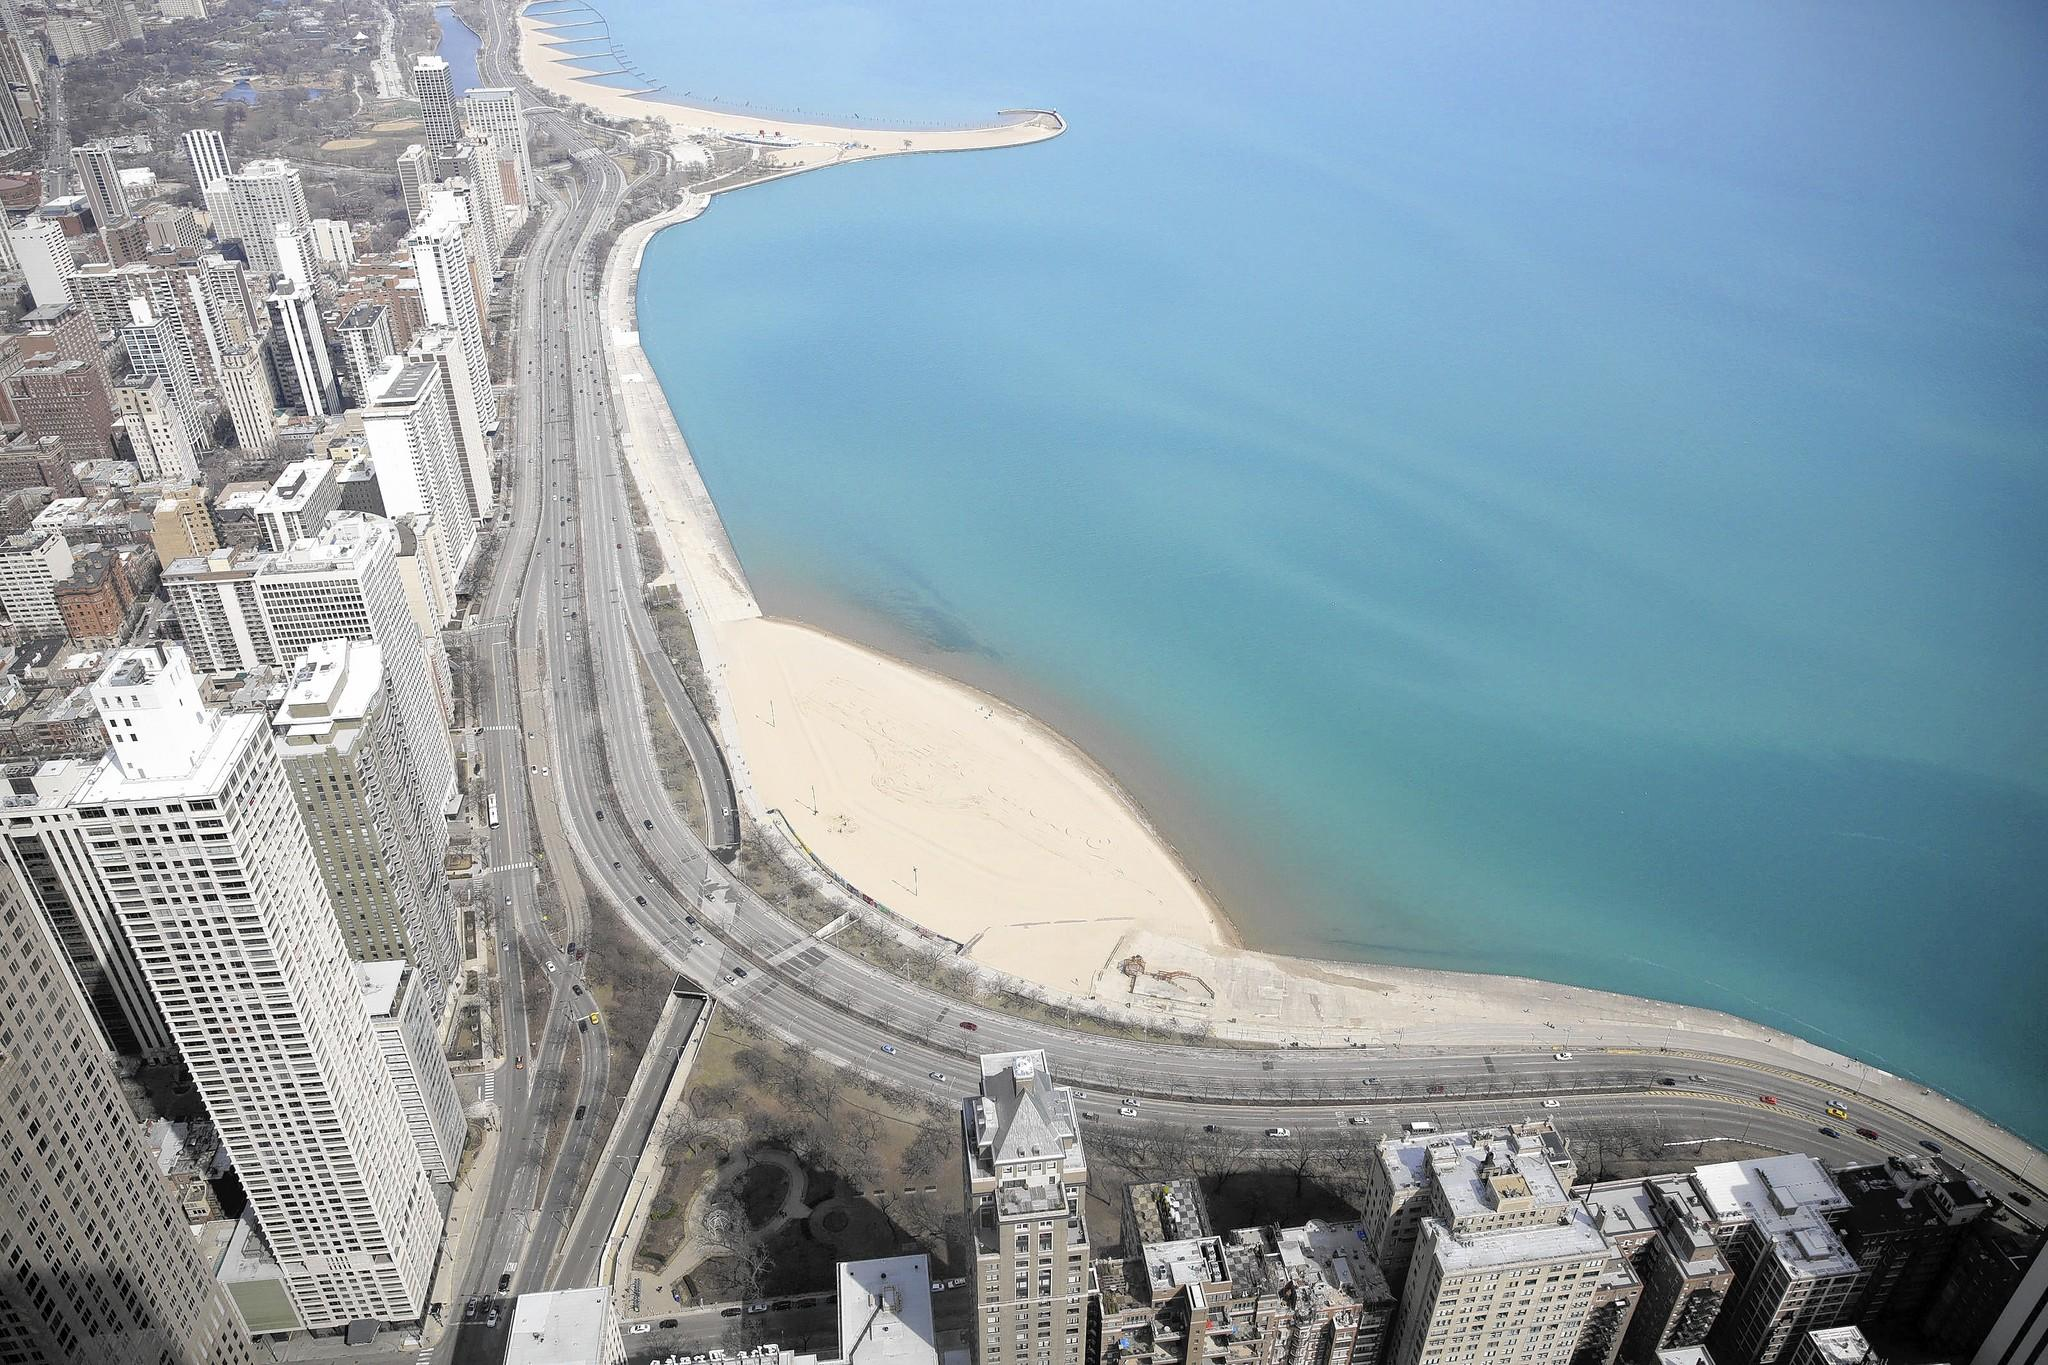 Proposals for Lake Shore Drive's improvement include building landfill into the lake between Ohio Street and North Avenue to soften the S-curve at Oak Street.